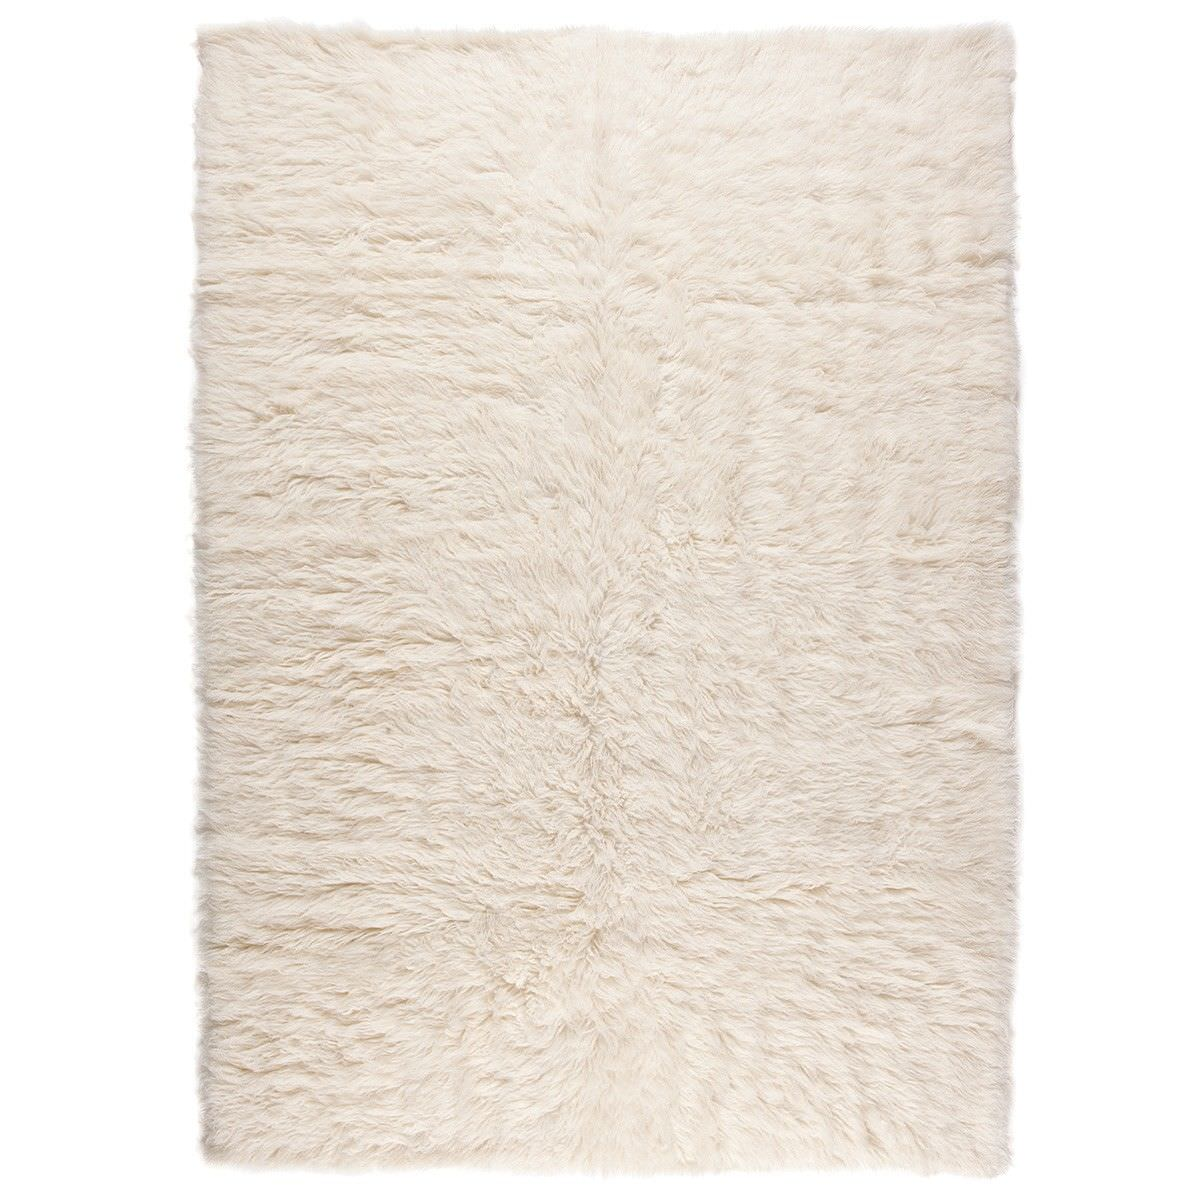 Flokati Greek Made Shaggy Wool Rug, 230x160cm, White